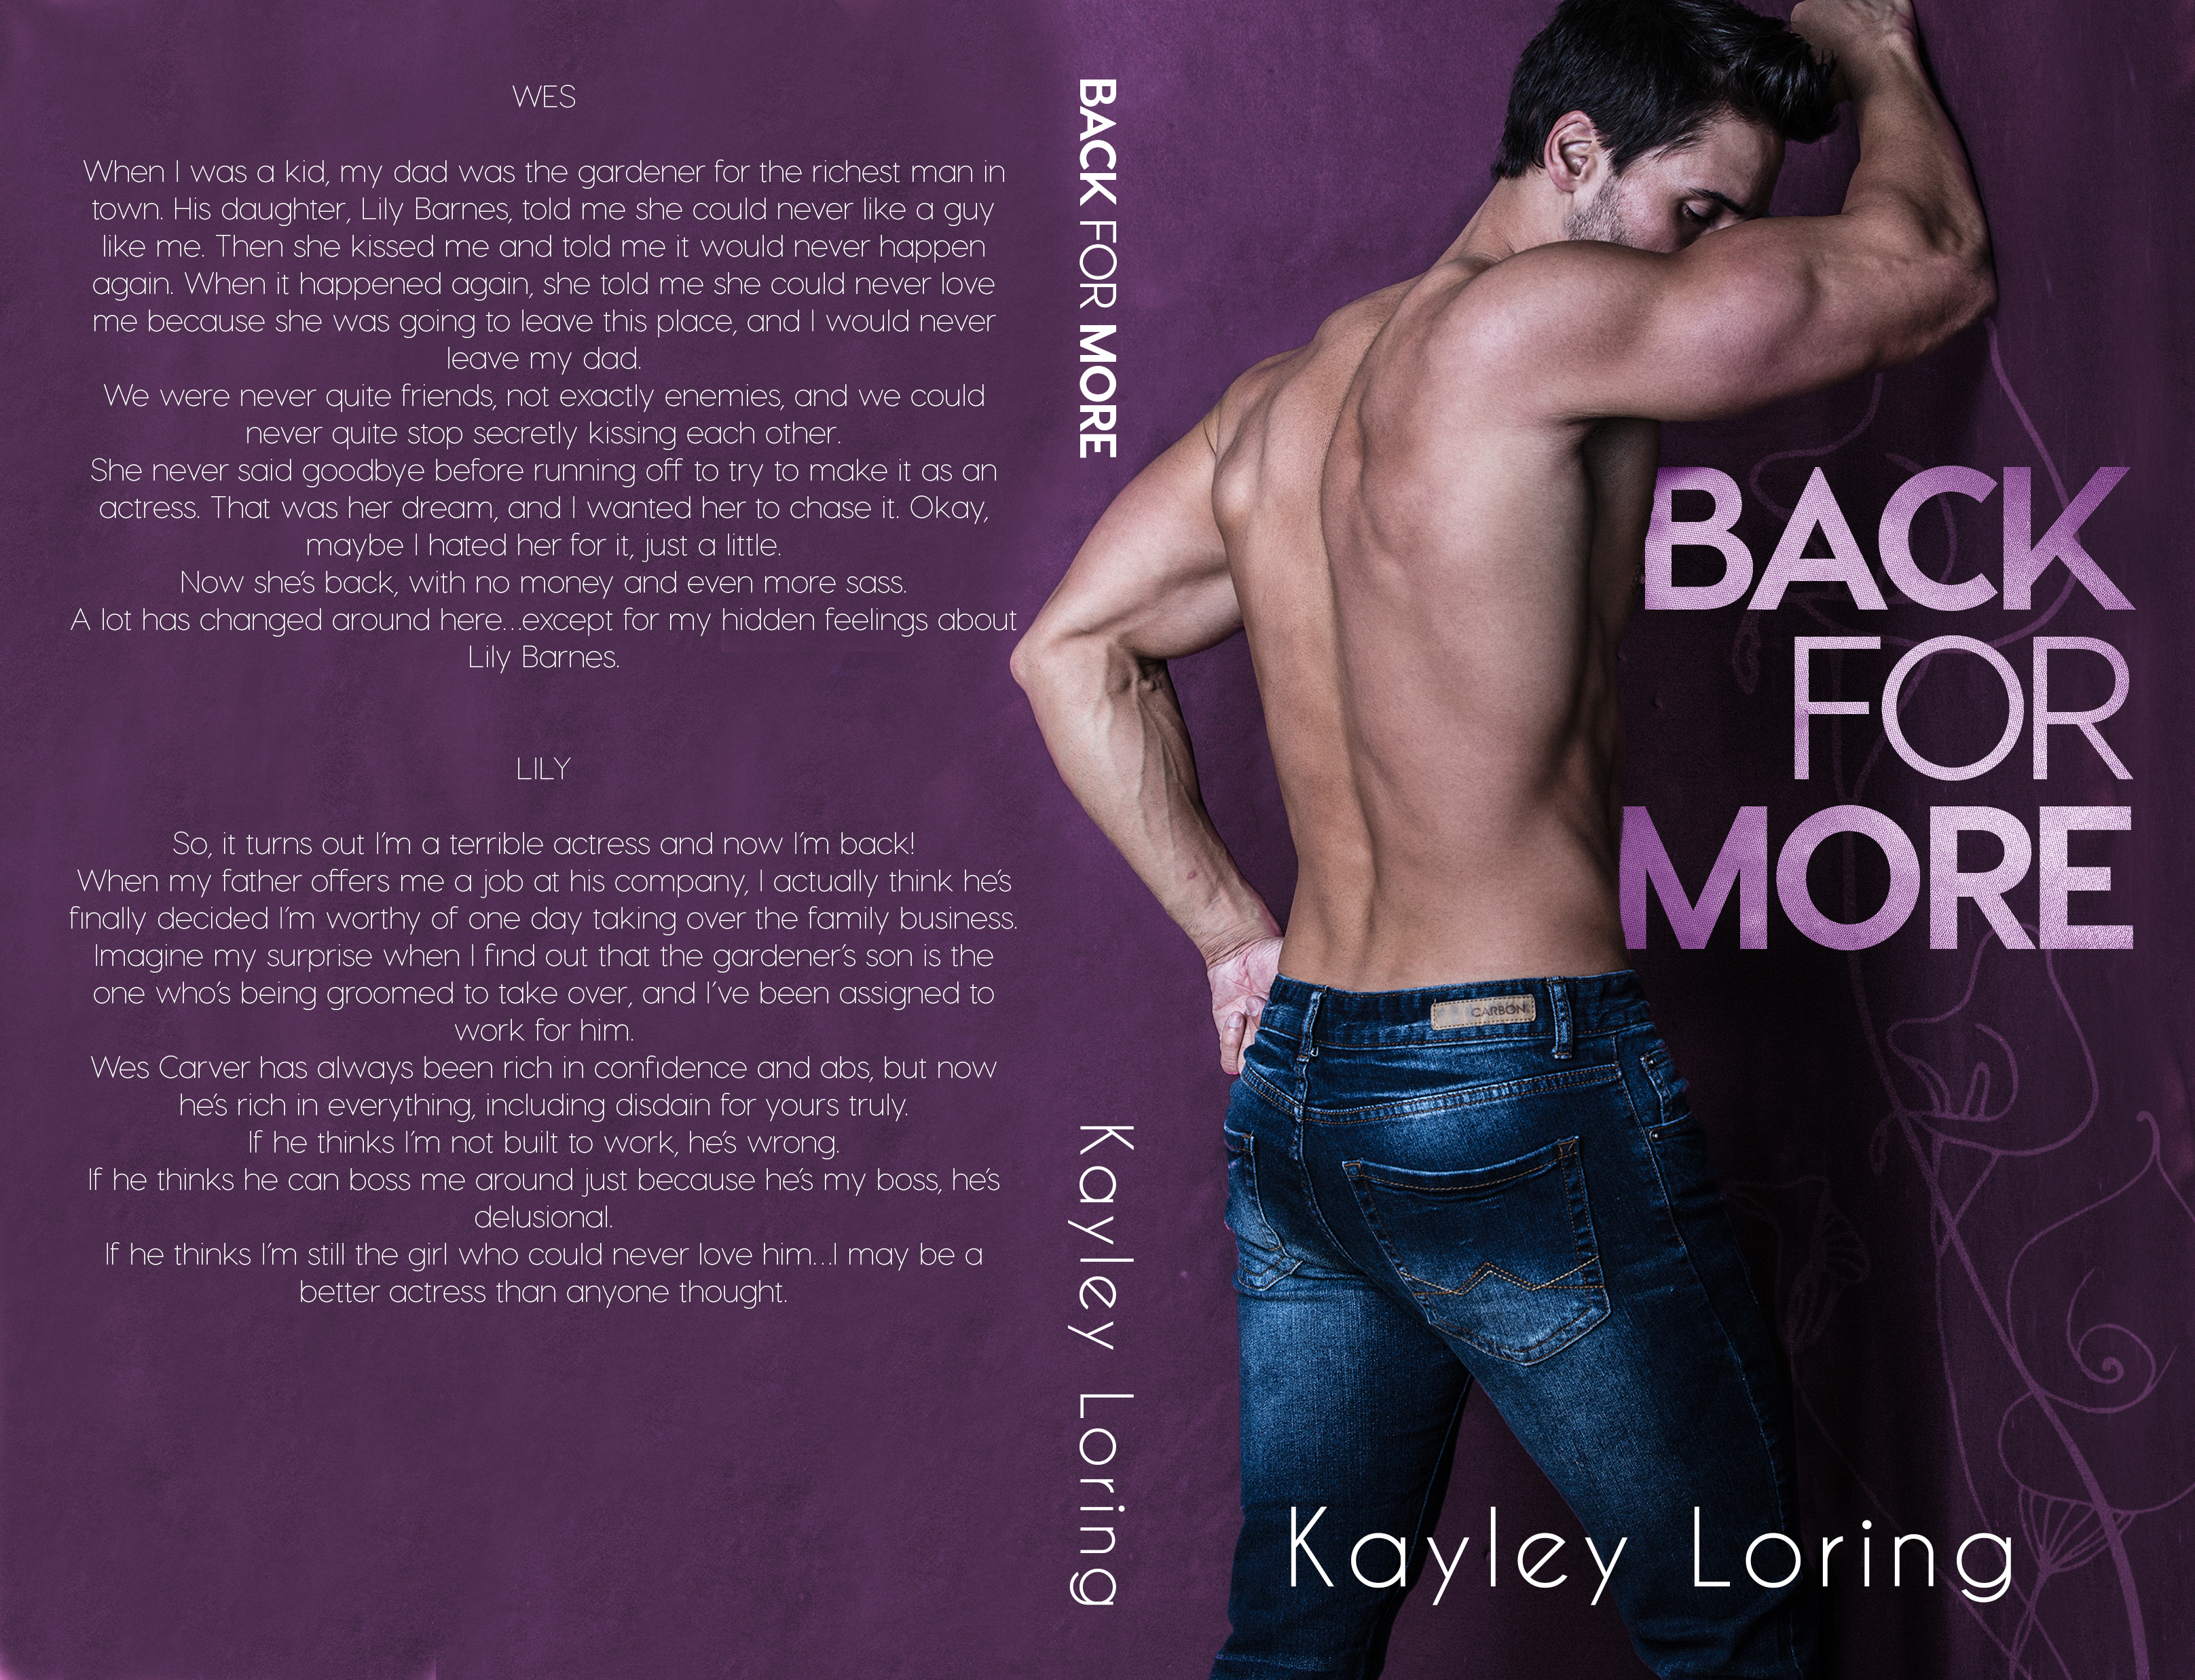 Back For More Kayley Loring Wrap-June 8